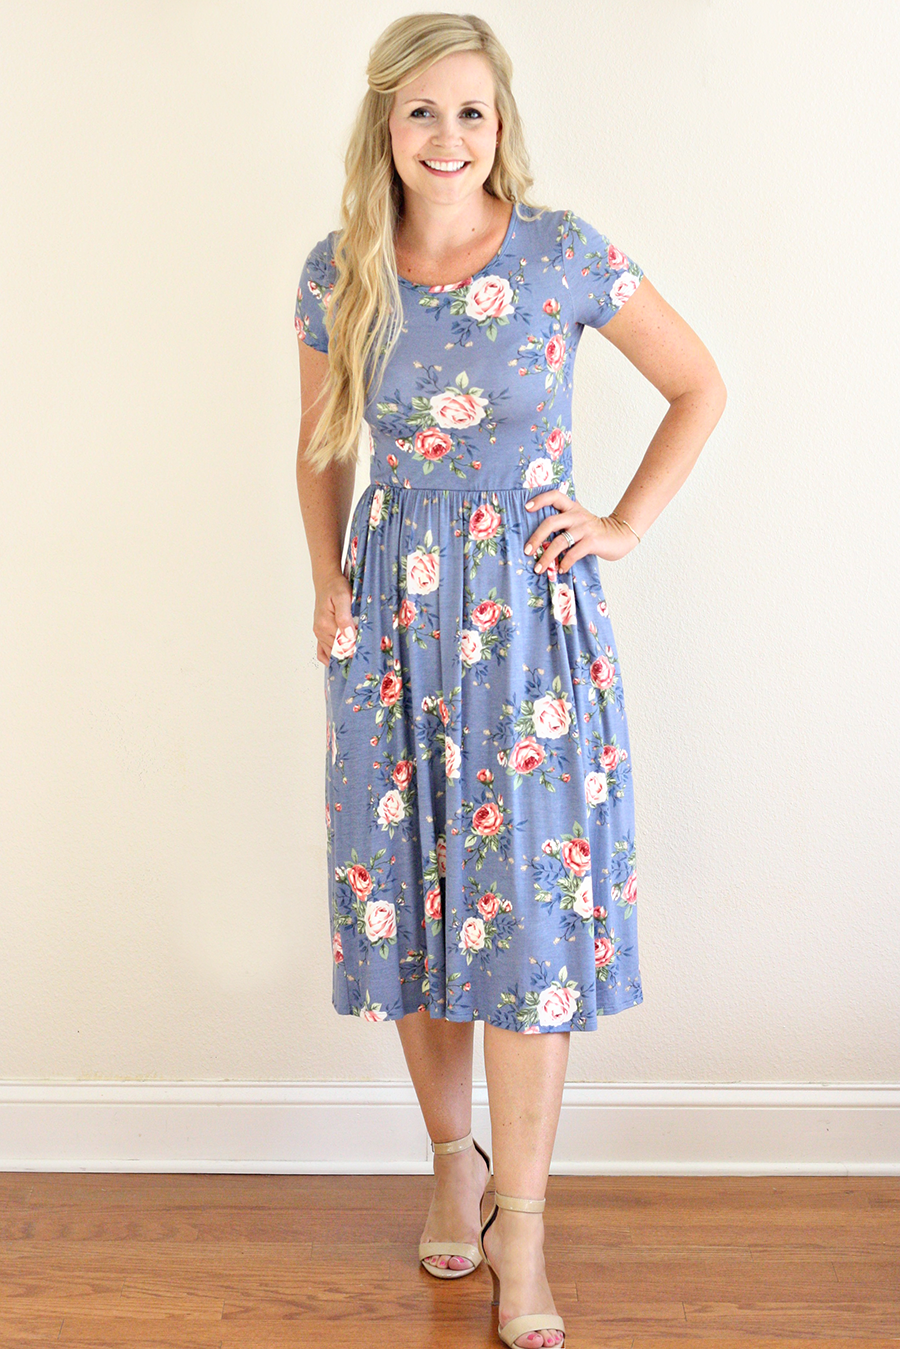 Modest & Femine Floral Dress by Cleo Madison | Ashlee Proffitt